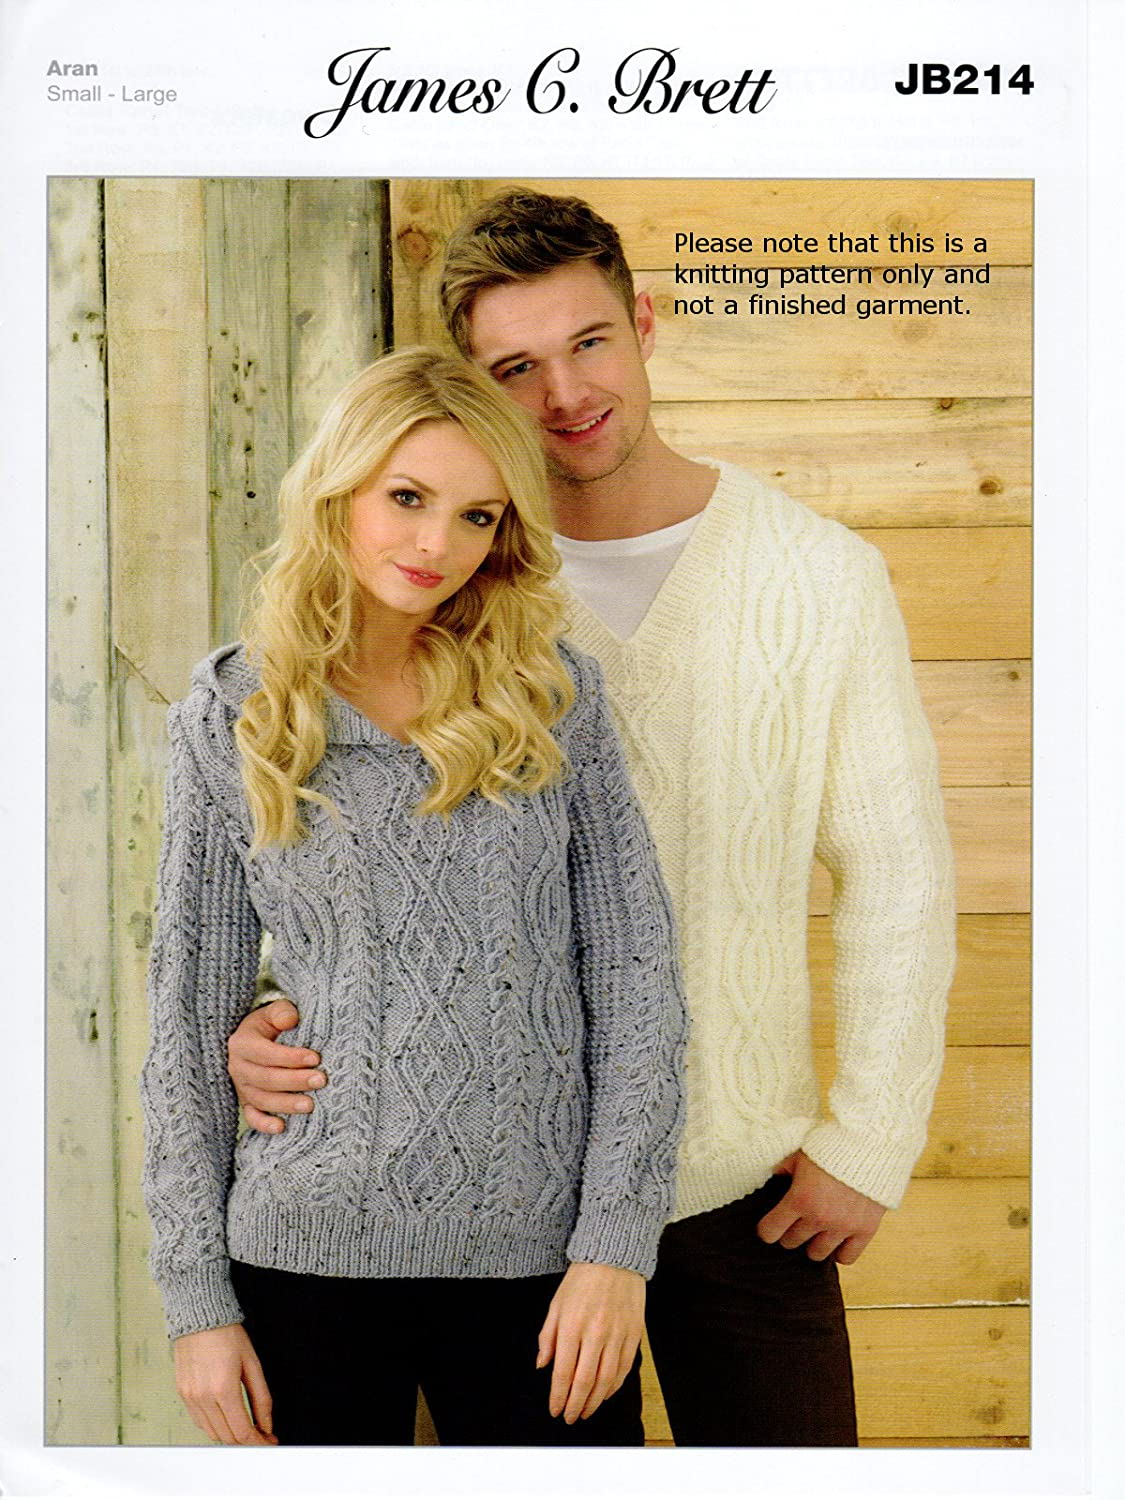 James brett knitting pattern instructions for ladies hooded jumper james brett knitting pattern instructions for ladies hooded jumper mens v neck sweater in rustic aran jb214 amazon kitchen home bankloansurffo Image collections